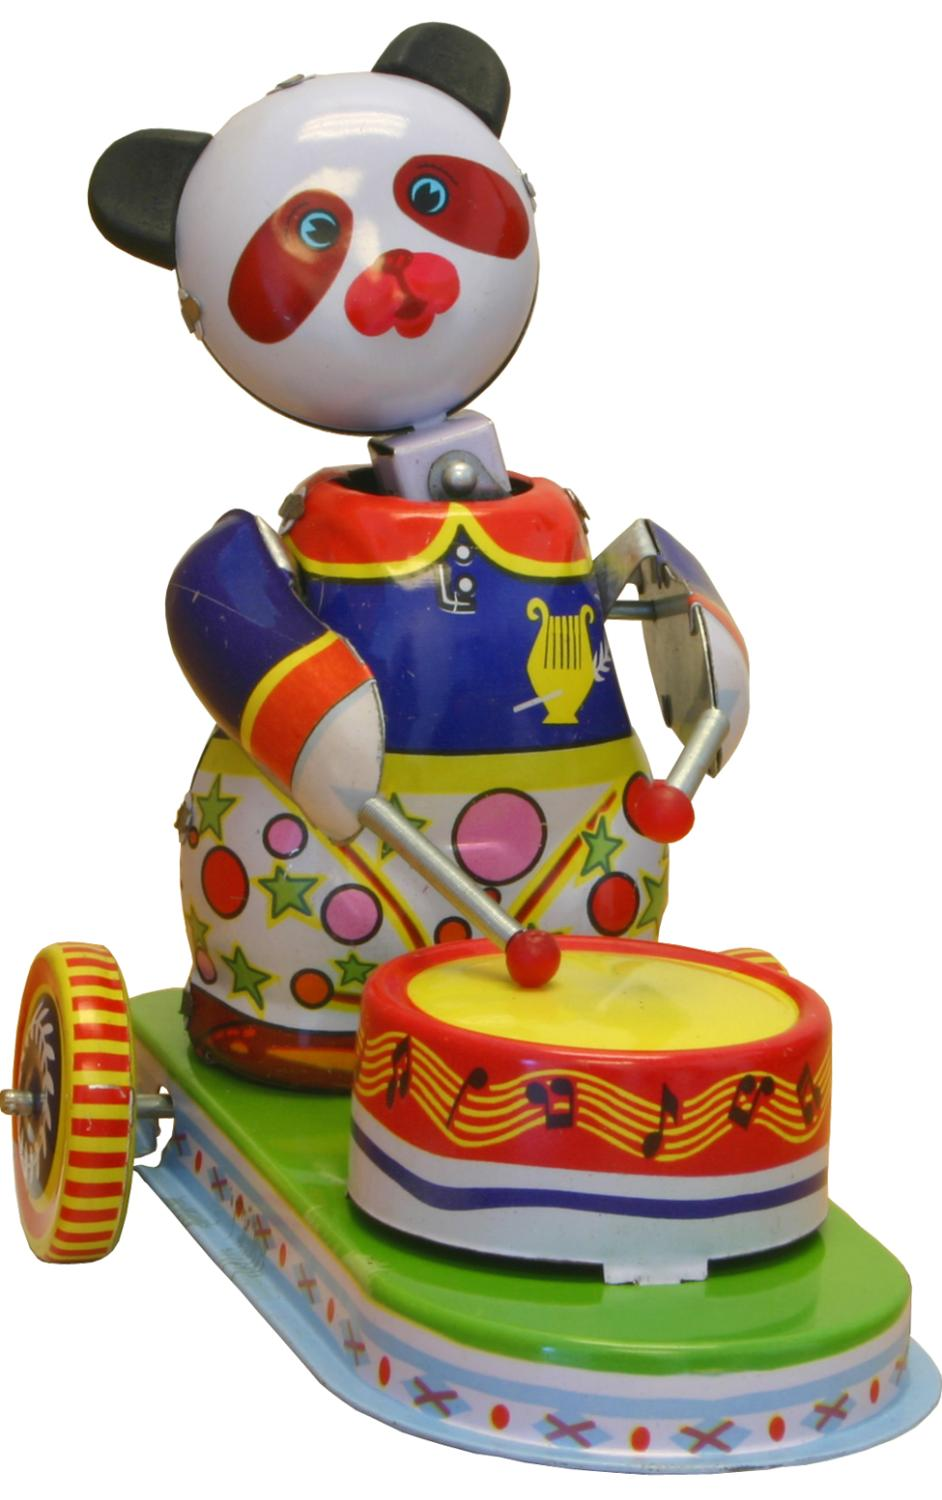 MS565 - Collectible Tin Toy - Panda Drummer - 5